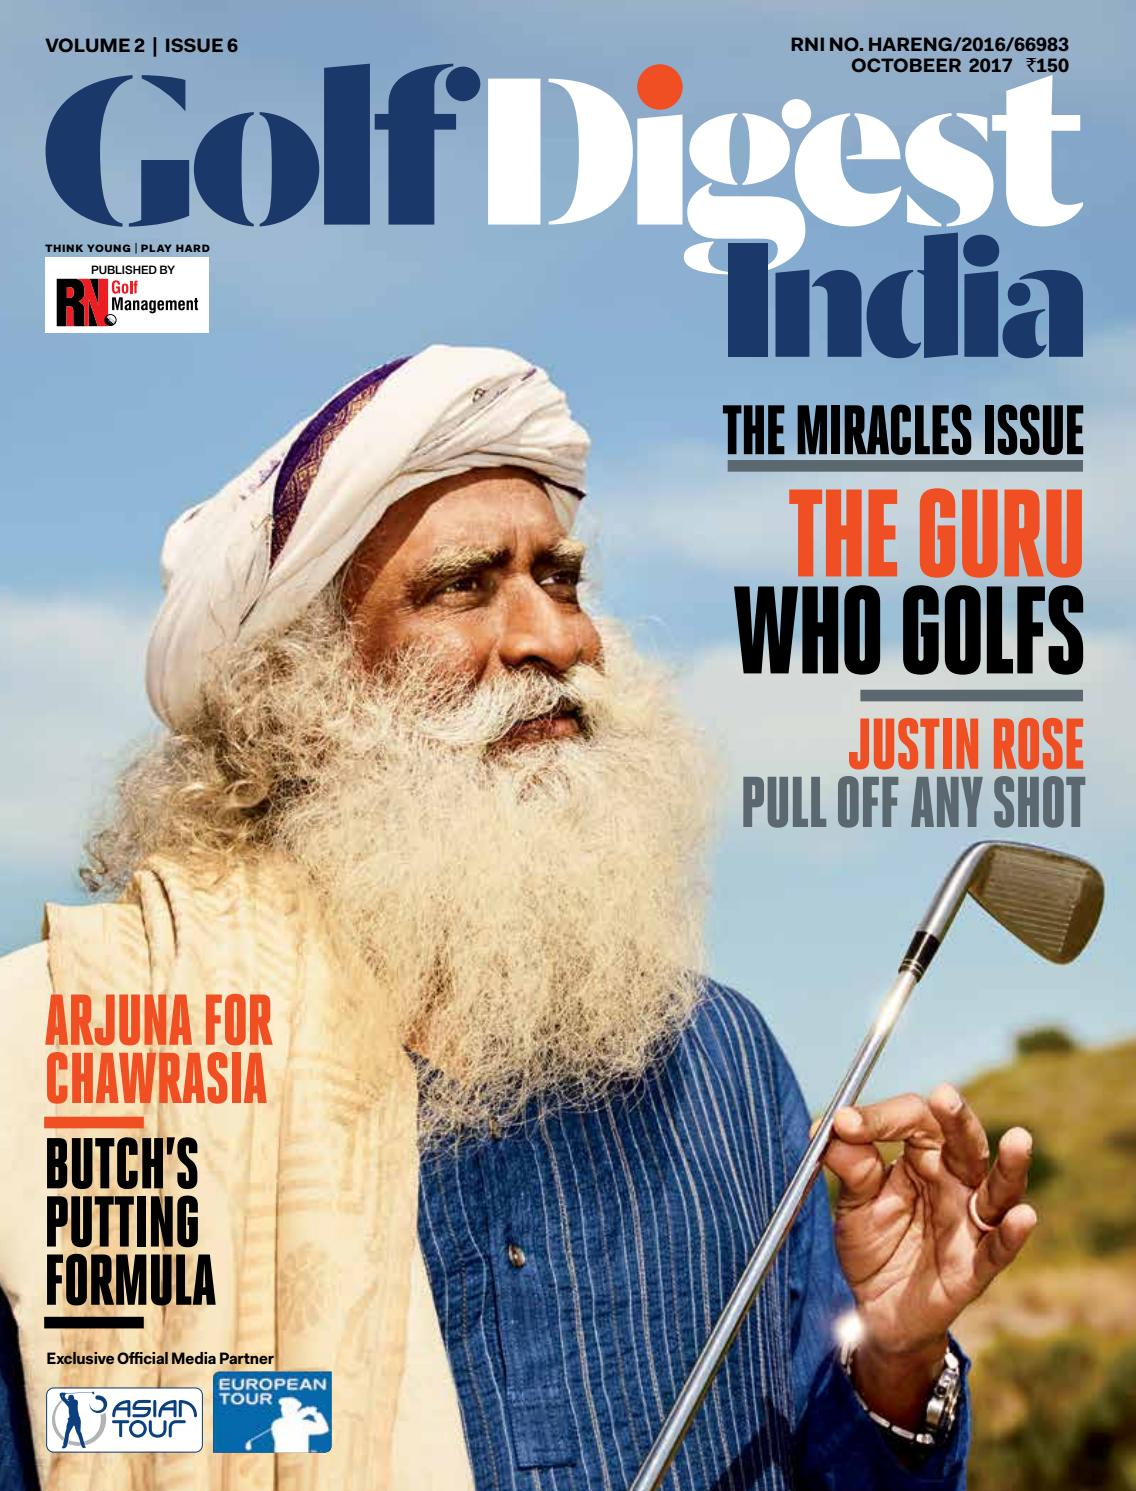 Golf Digest India - October 2017 by Golf Digest India - issuu